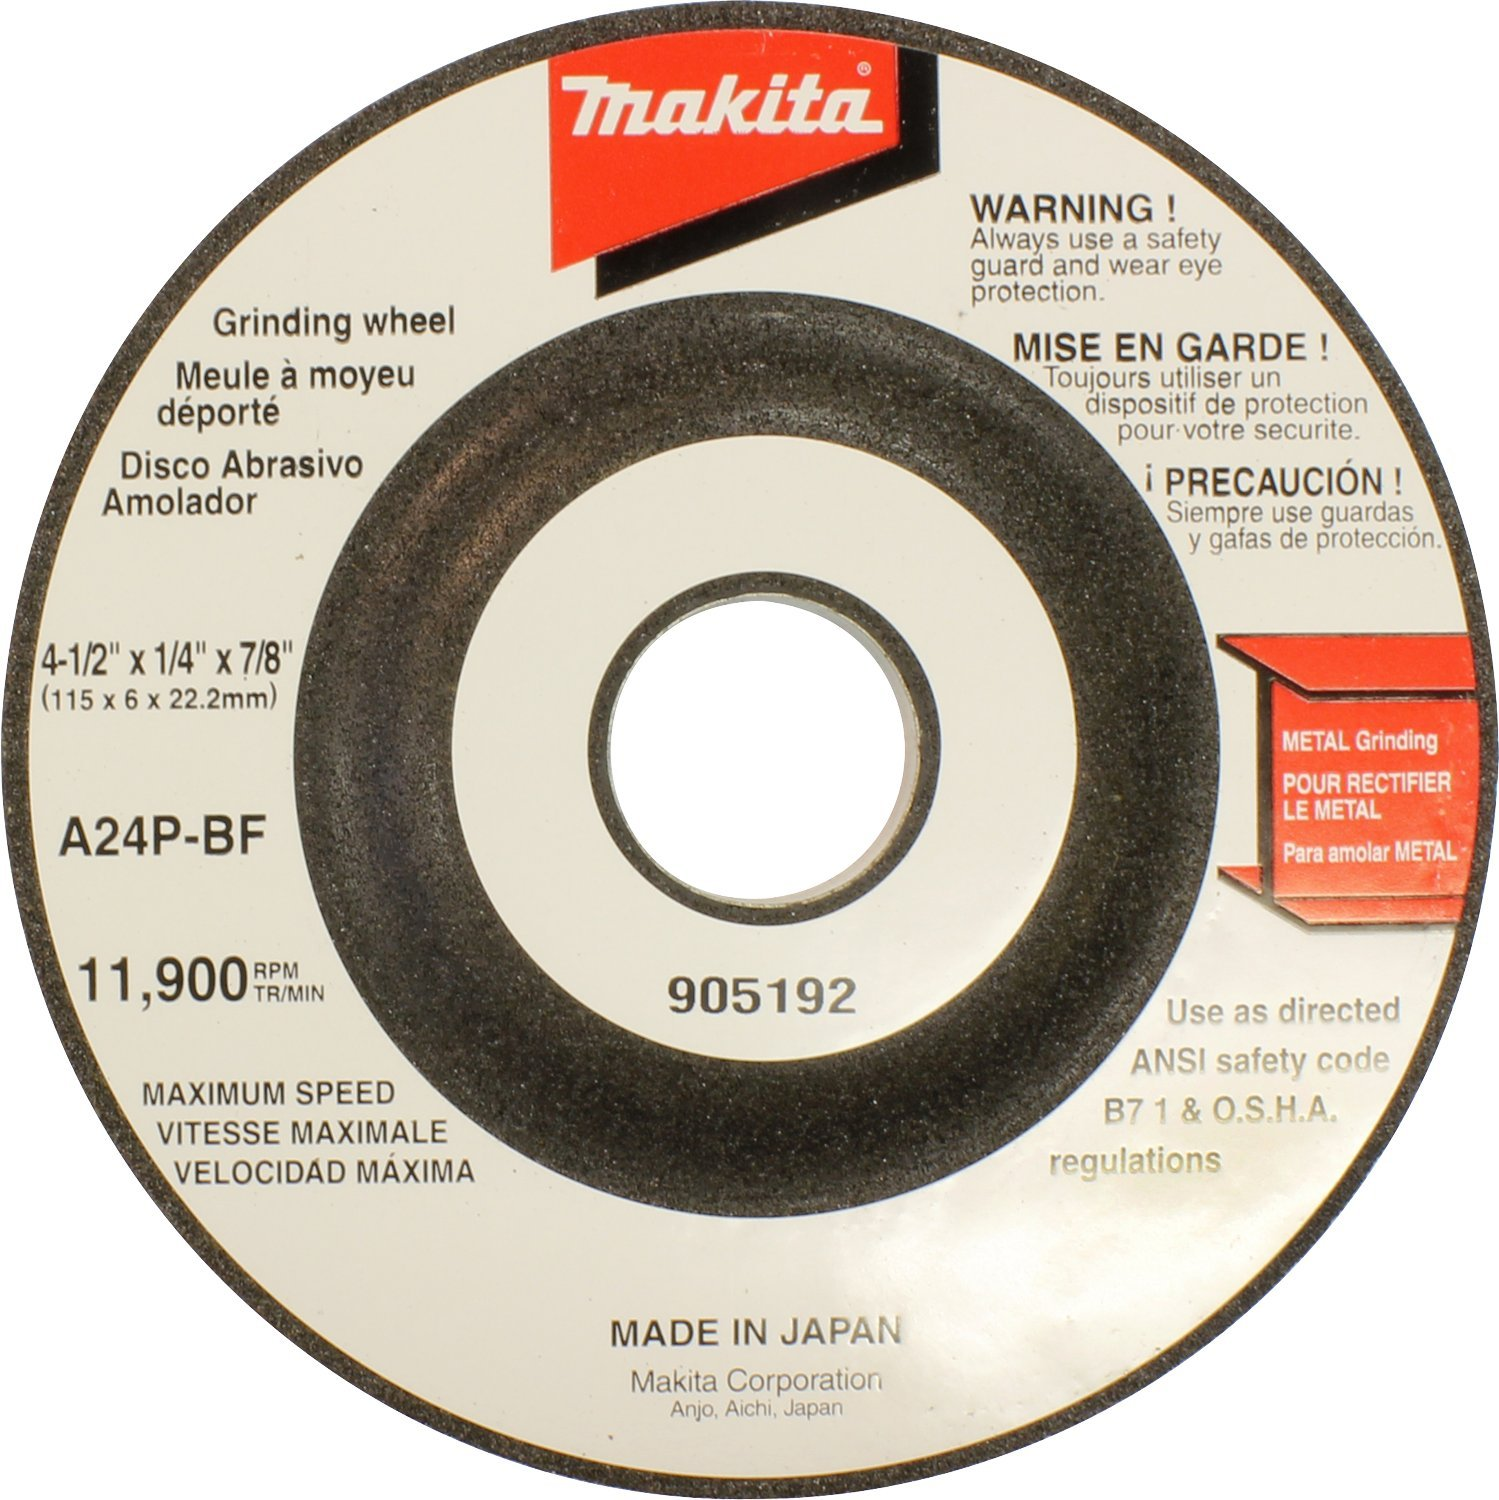 Makita 741423-0-1 4-1/2-Inch Number 24 Grind Wheel (Discontinued by Manufacturer)